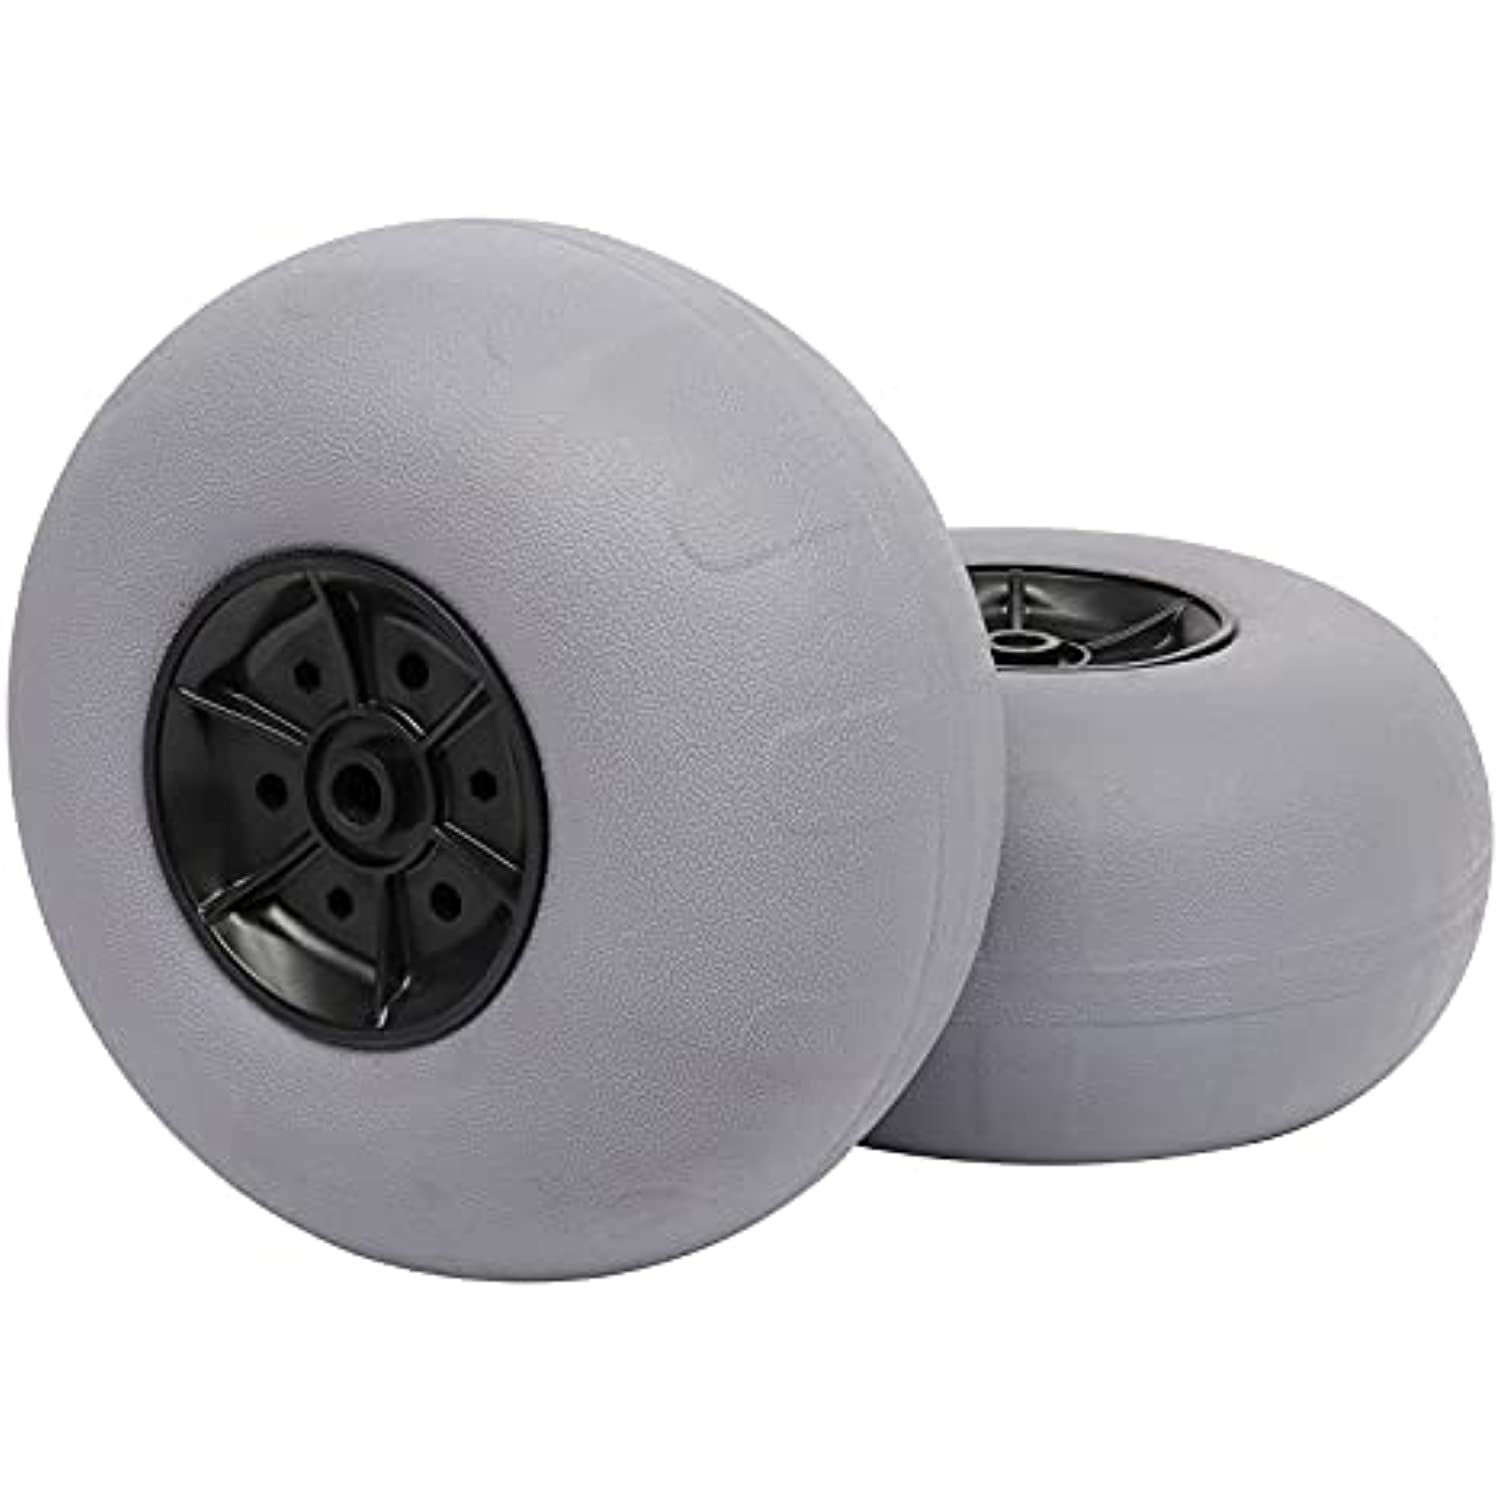 Bonnlo Replacement Balloon Wheels 12 Big Beach Sand Tires for Kayak Dolly Canoe Carts Buggy with Free Air Pump Axle Diameter (12mm)